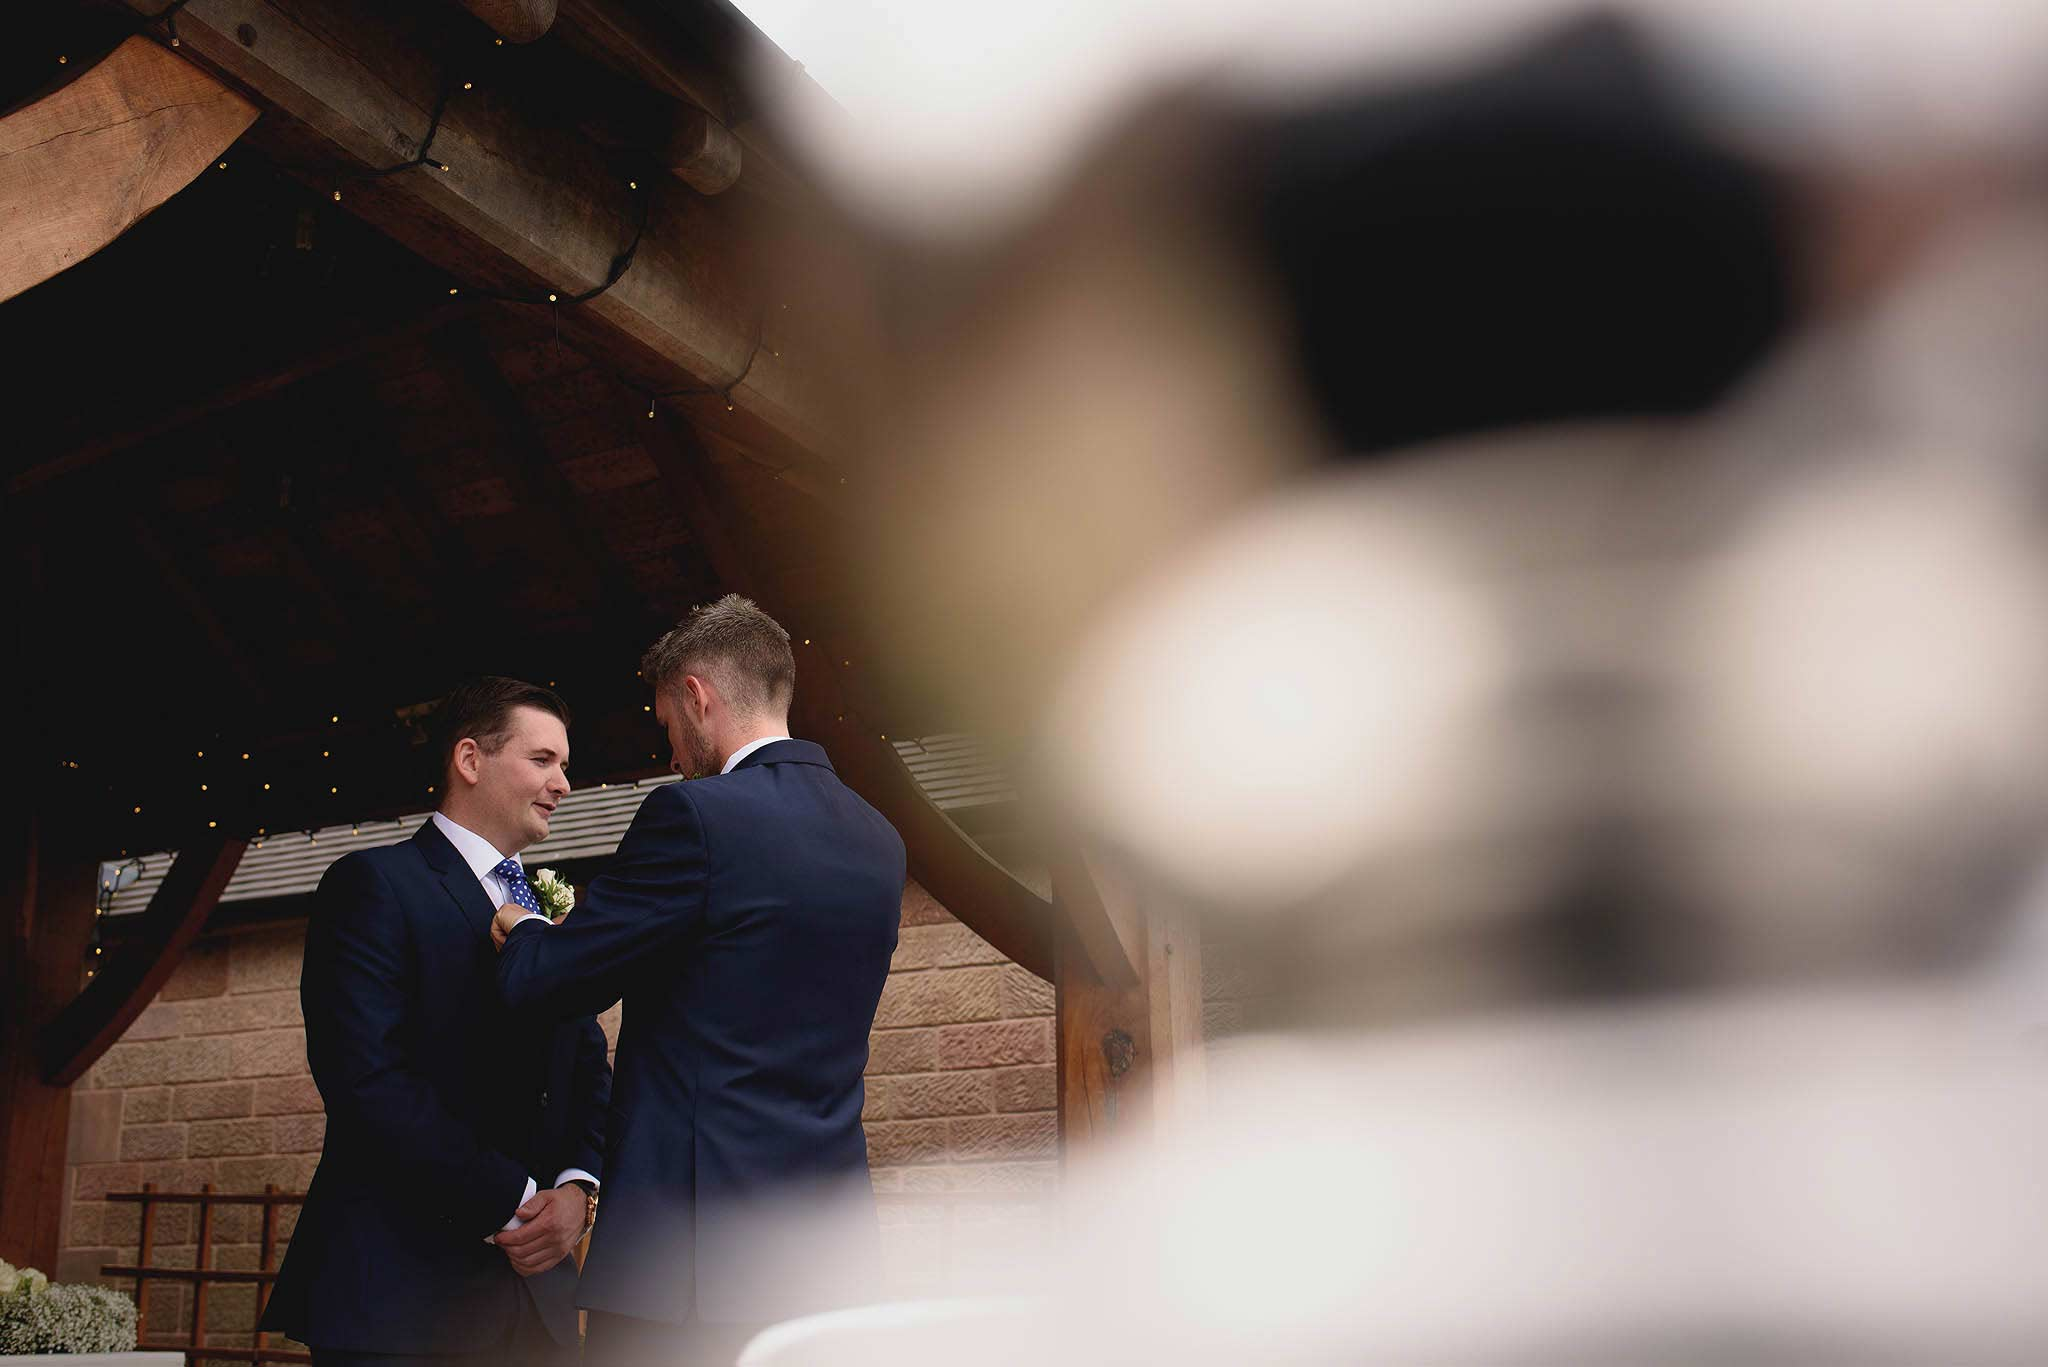 documentary photograph of groomsmen just before wedding ceremony